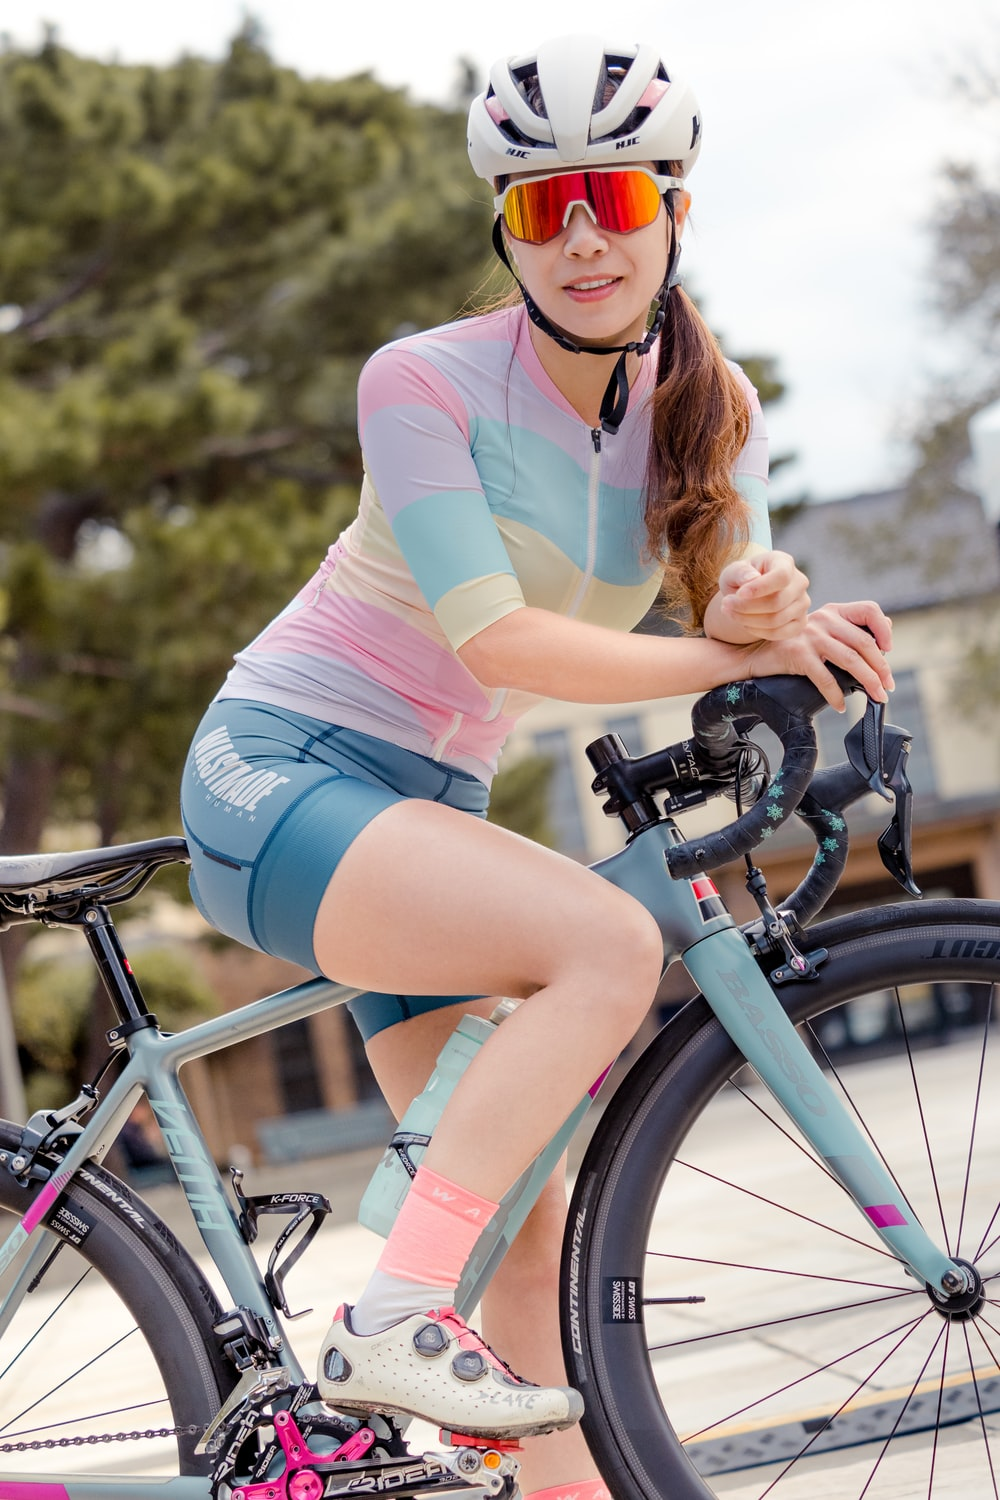 woman in pink shirt and blue shorts riding on black bicycle